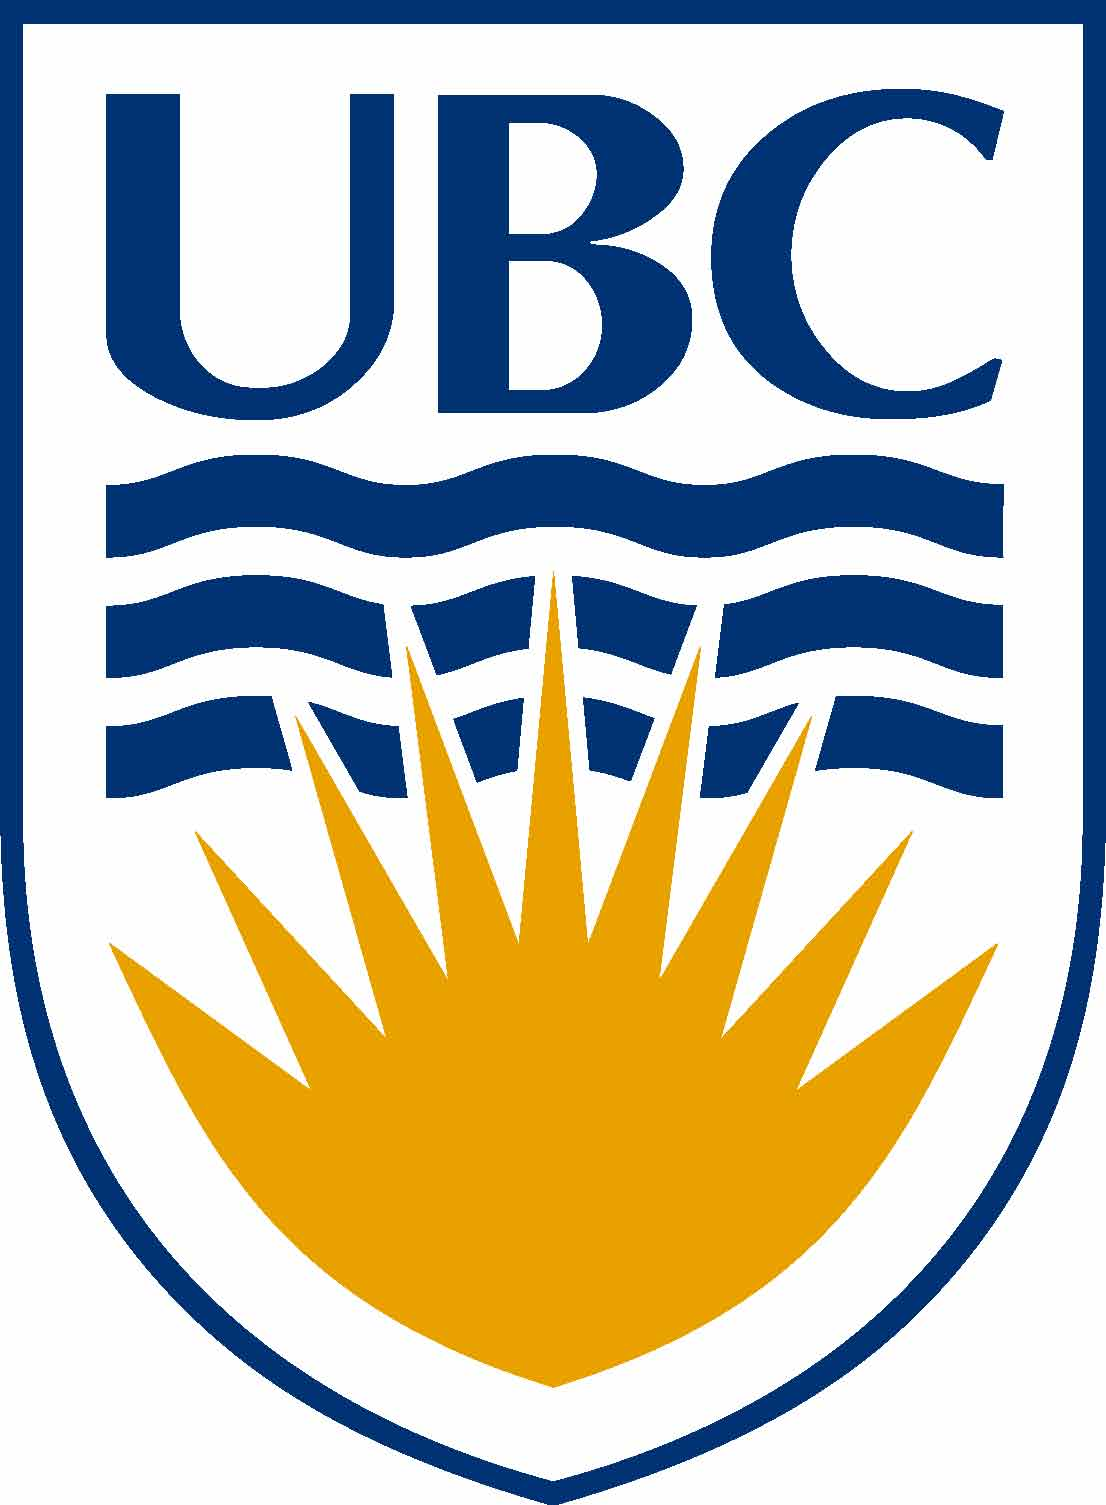 University of British Colombia